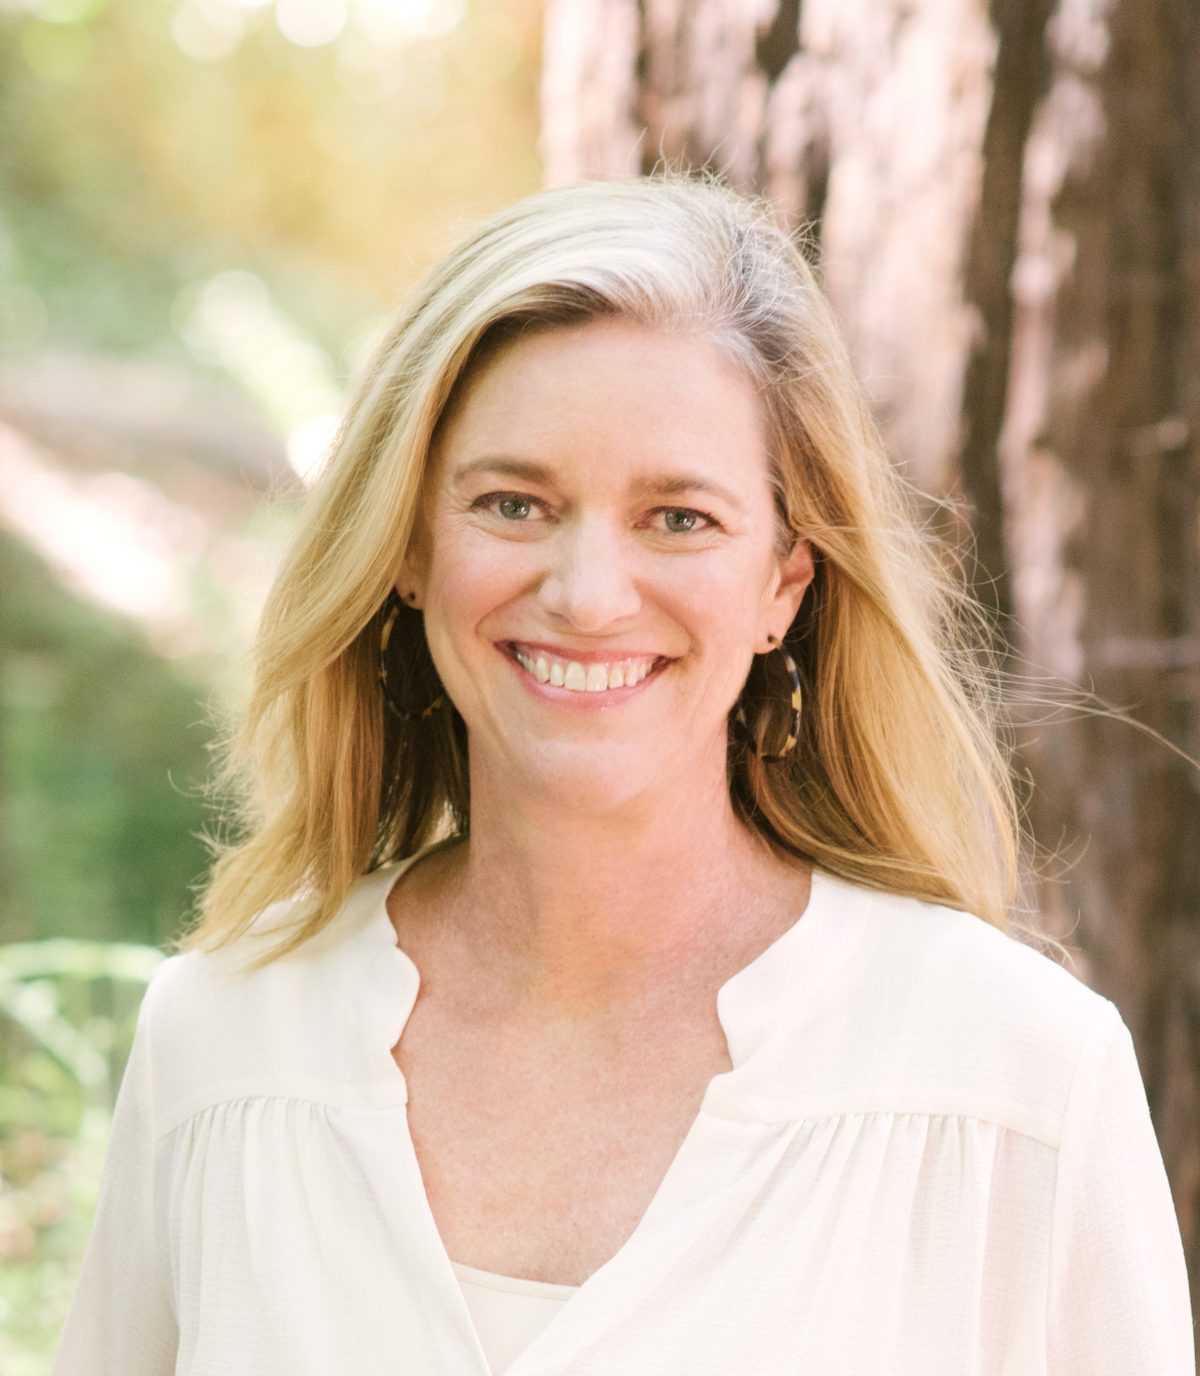 5 Rules for Life: True Botanicals Founder Hillary Peterson